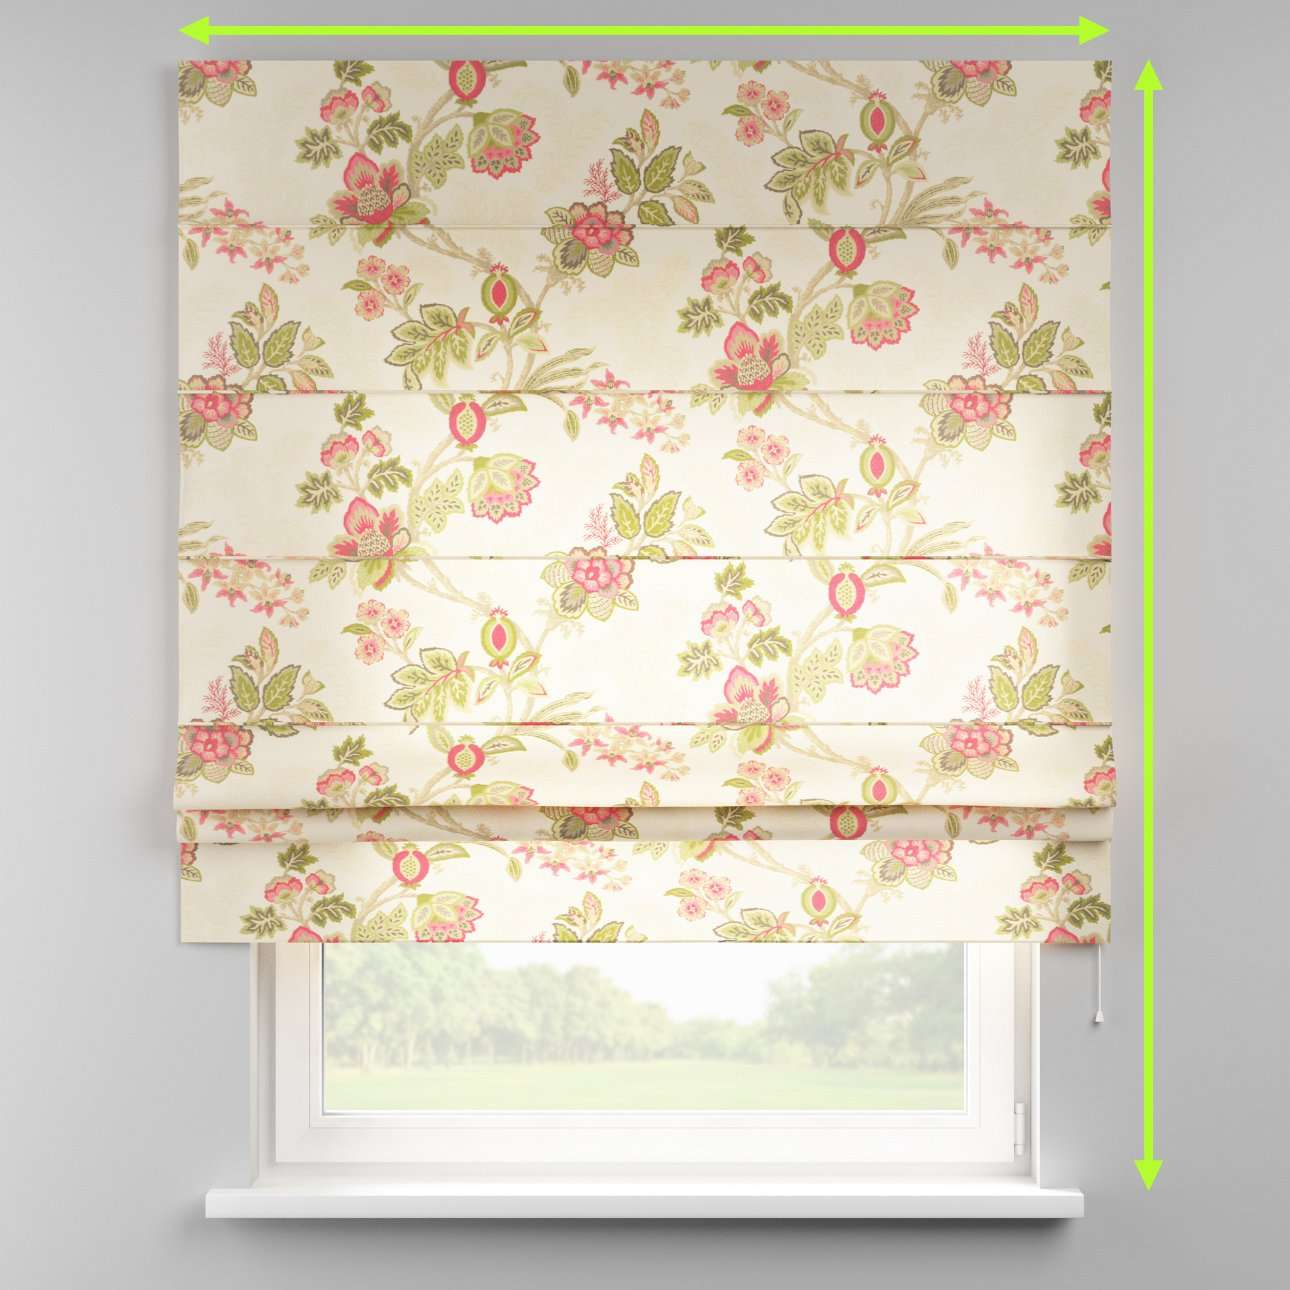 Padva roman blind  in collection Flowers, fabric: 140-98